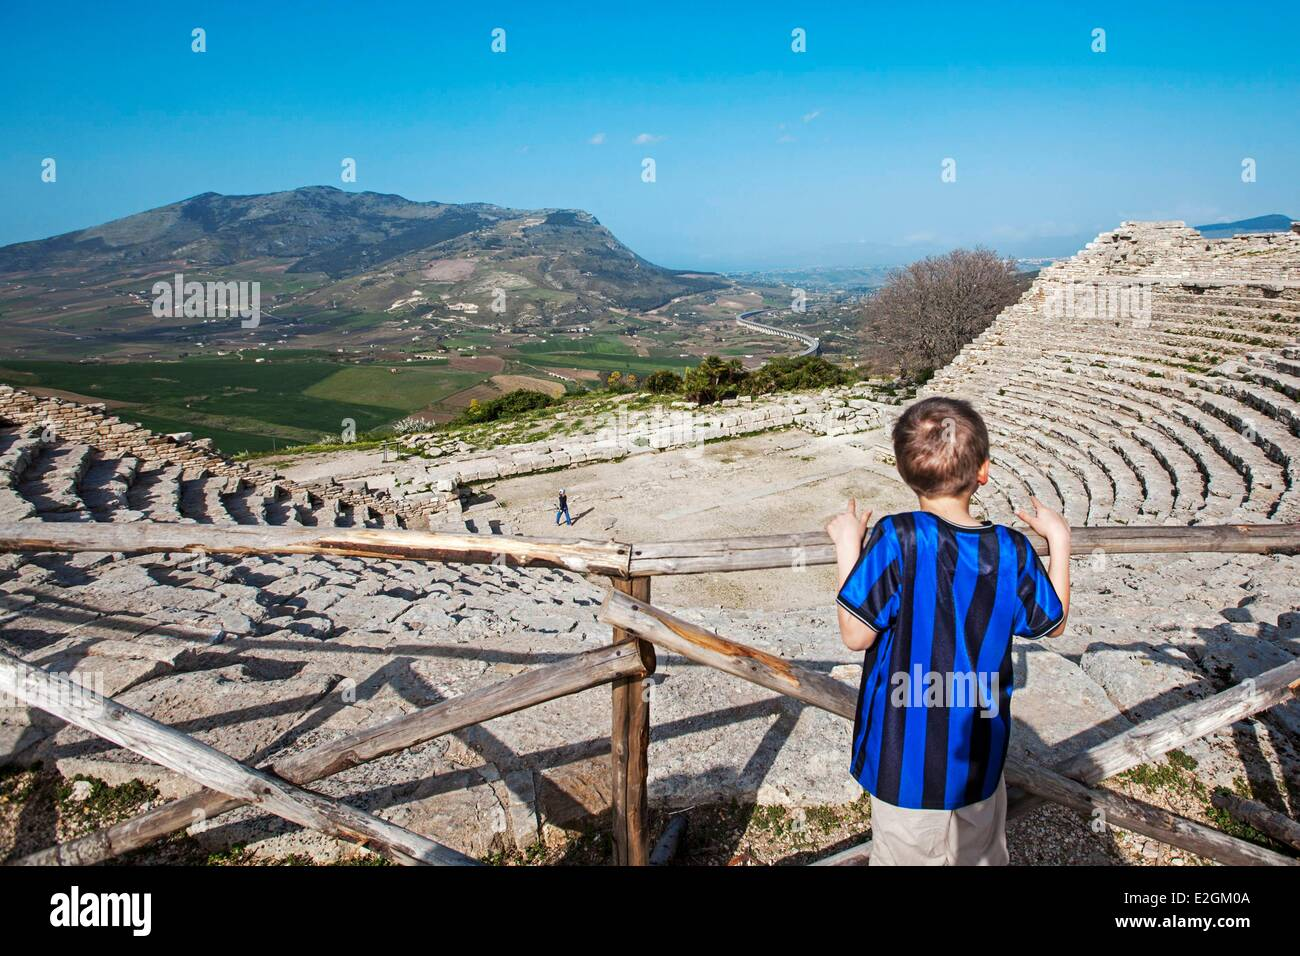 Italy Sicily Segesta archeological site Antic theatre built in 3th century BC - Stock Image